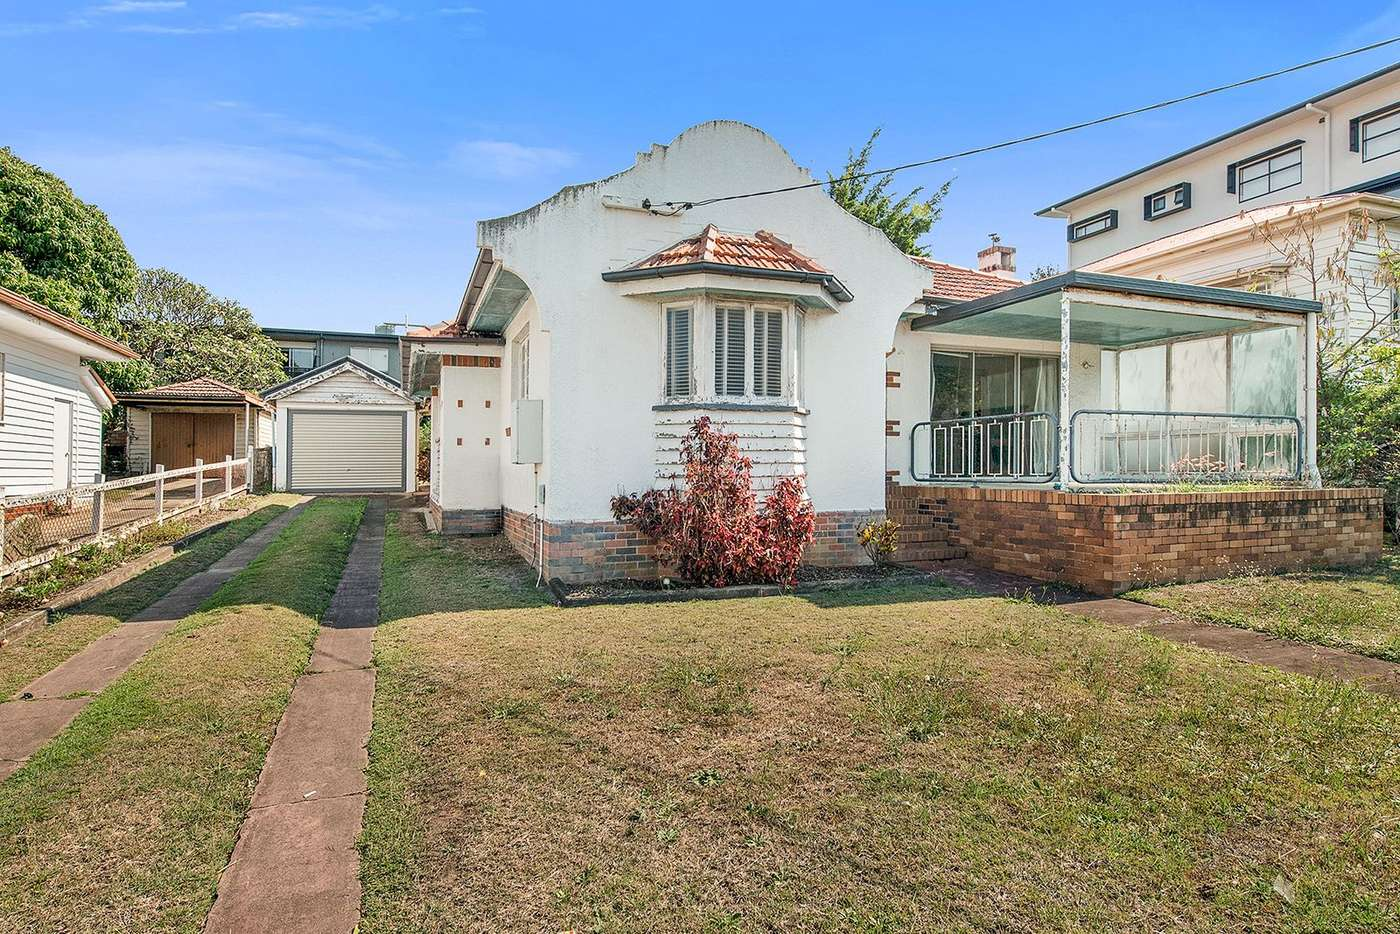 Main view of Homely house listing, 16 Colton Avenue, Lutwyche QLD 4030